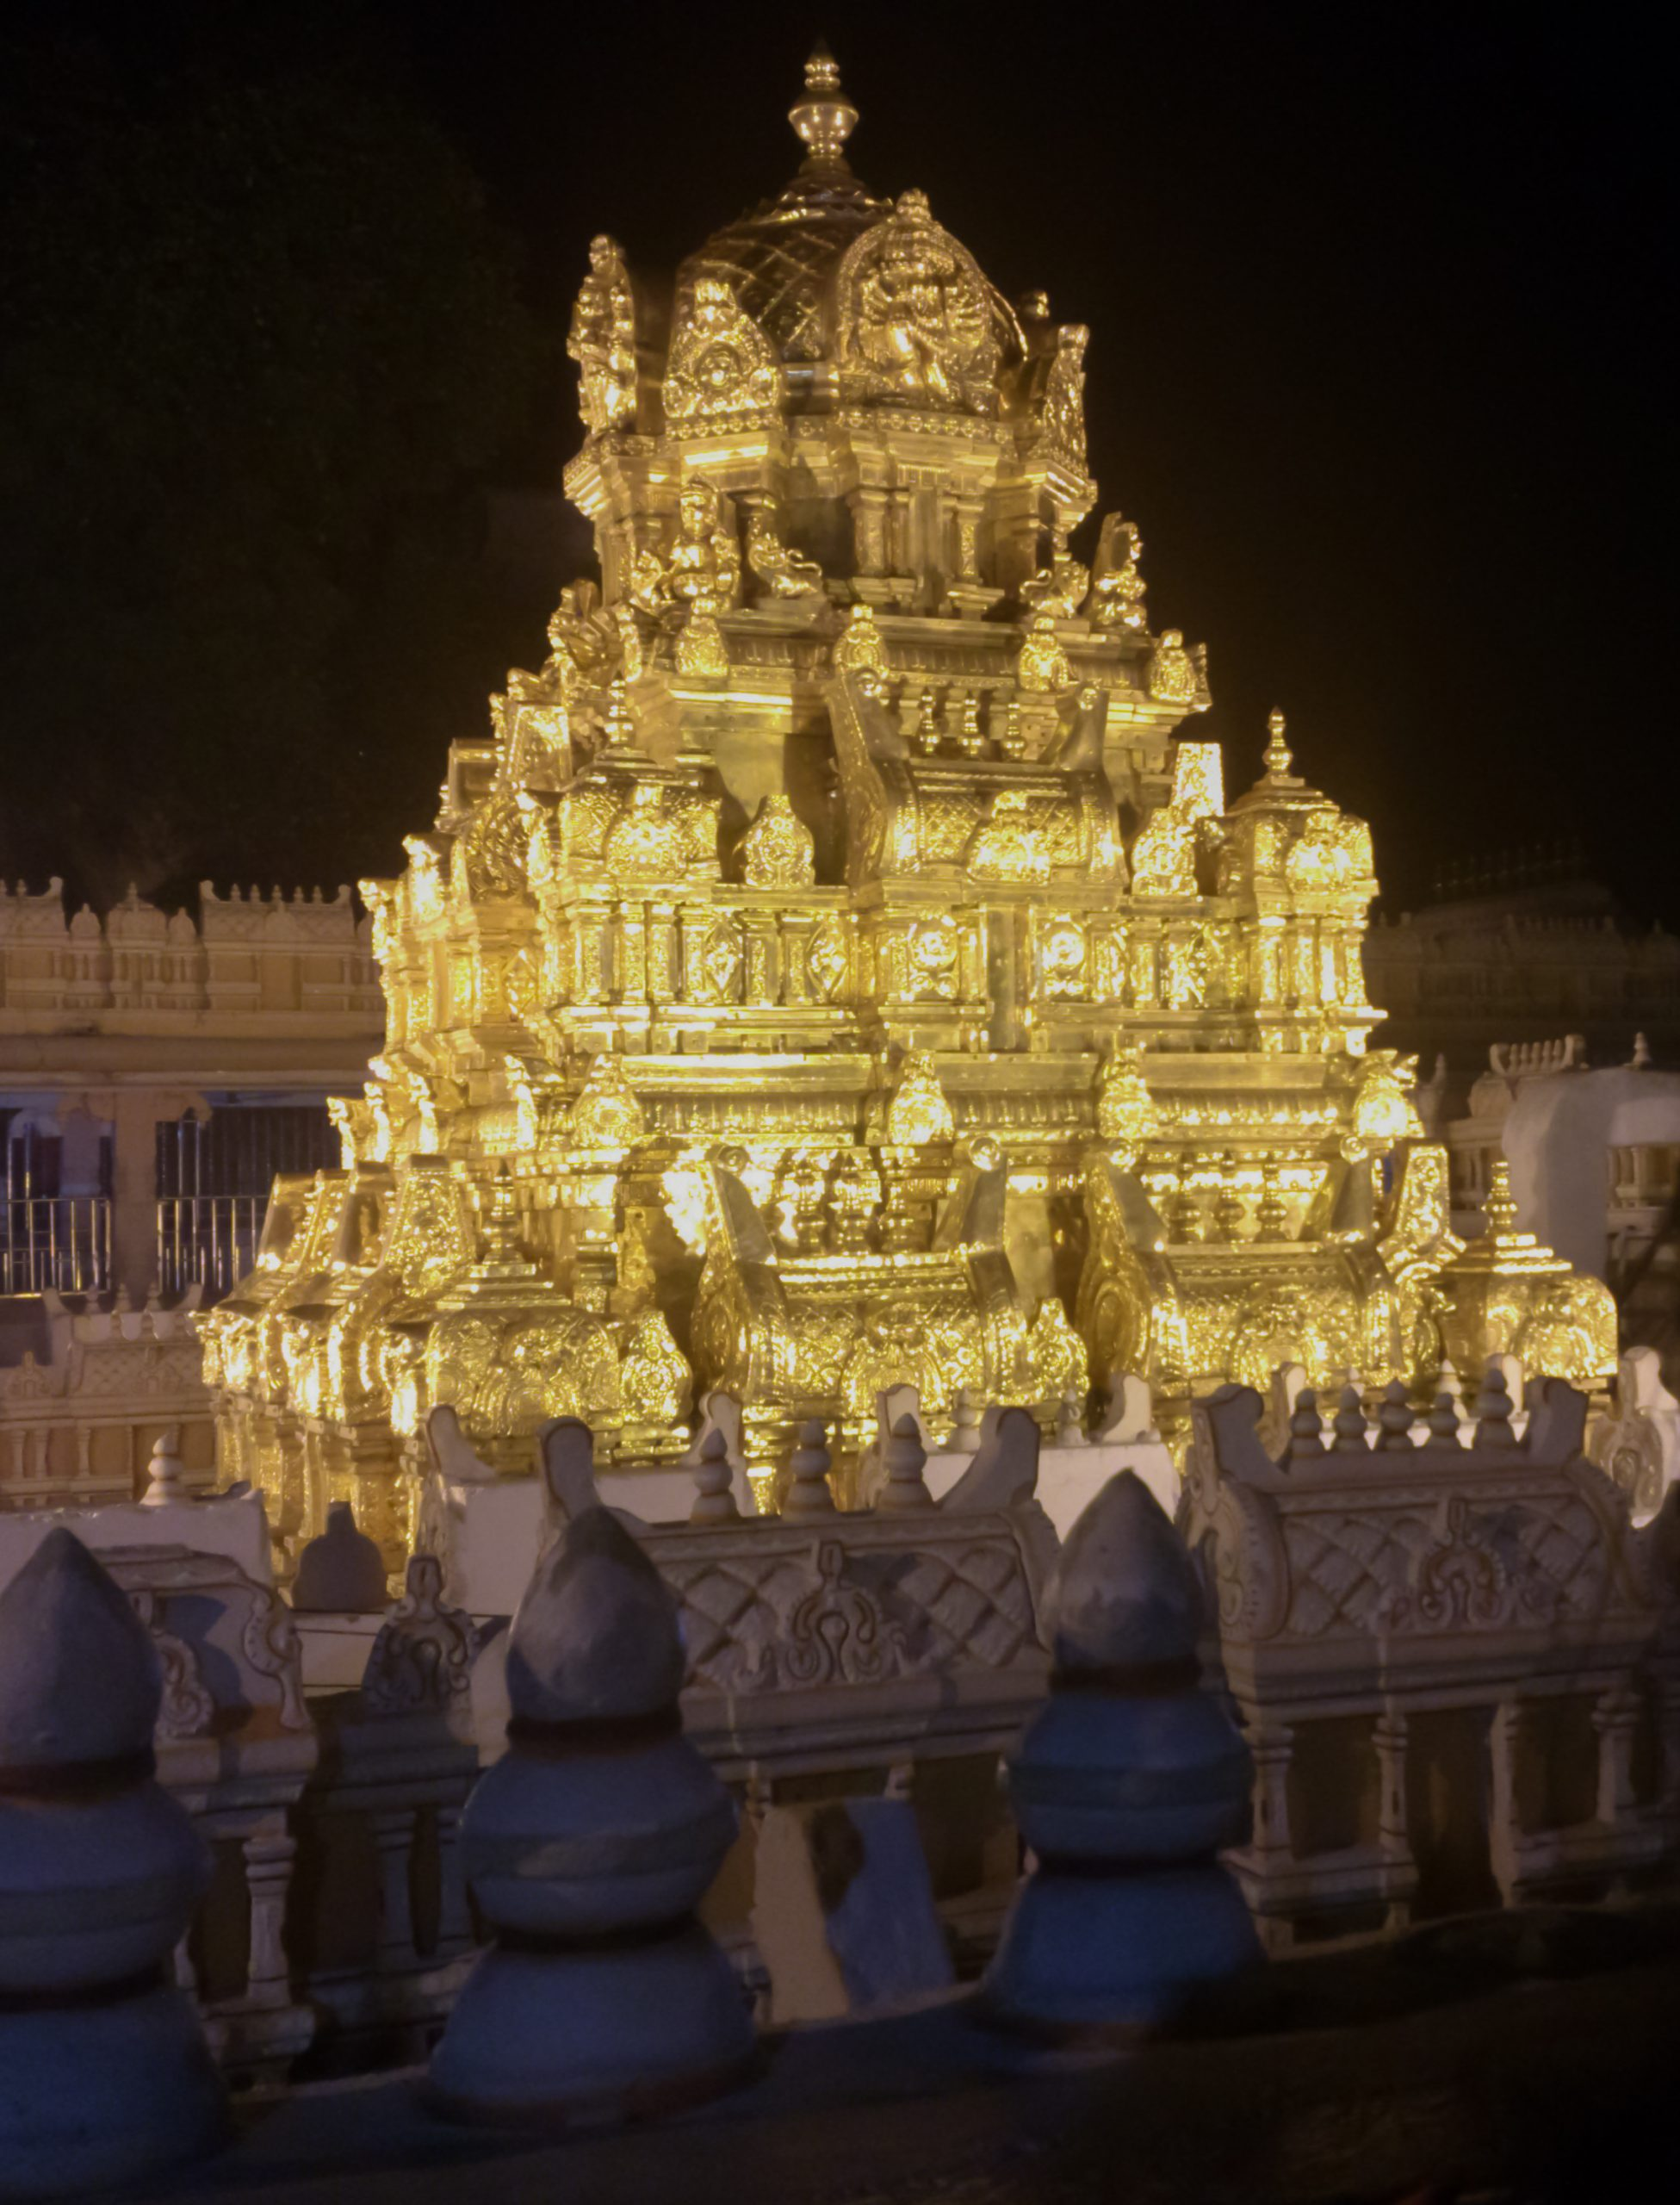 Best Attraction at Kanaka Durga Temple-The Golden Crown